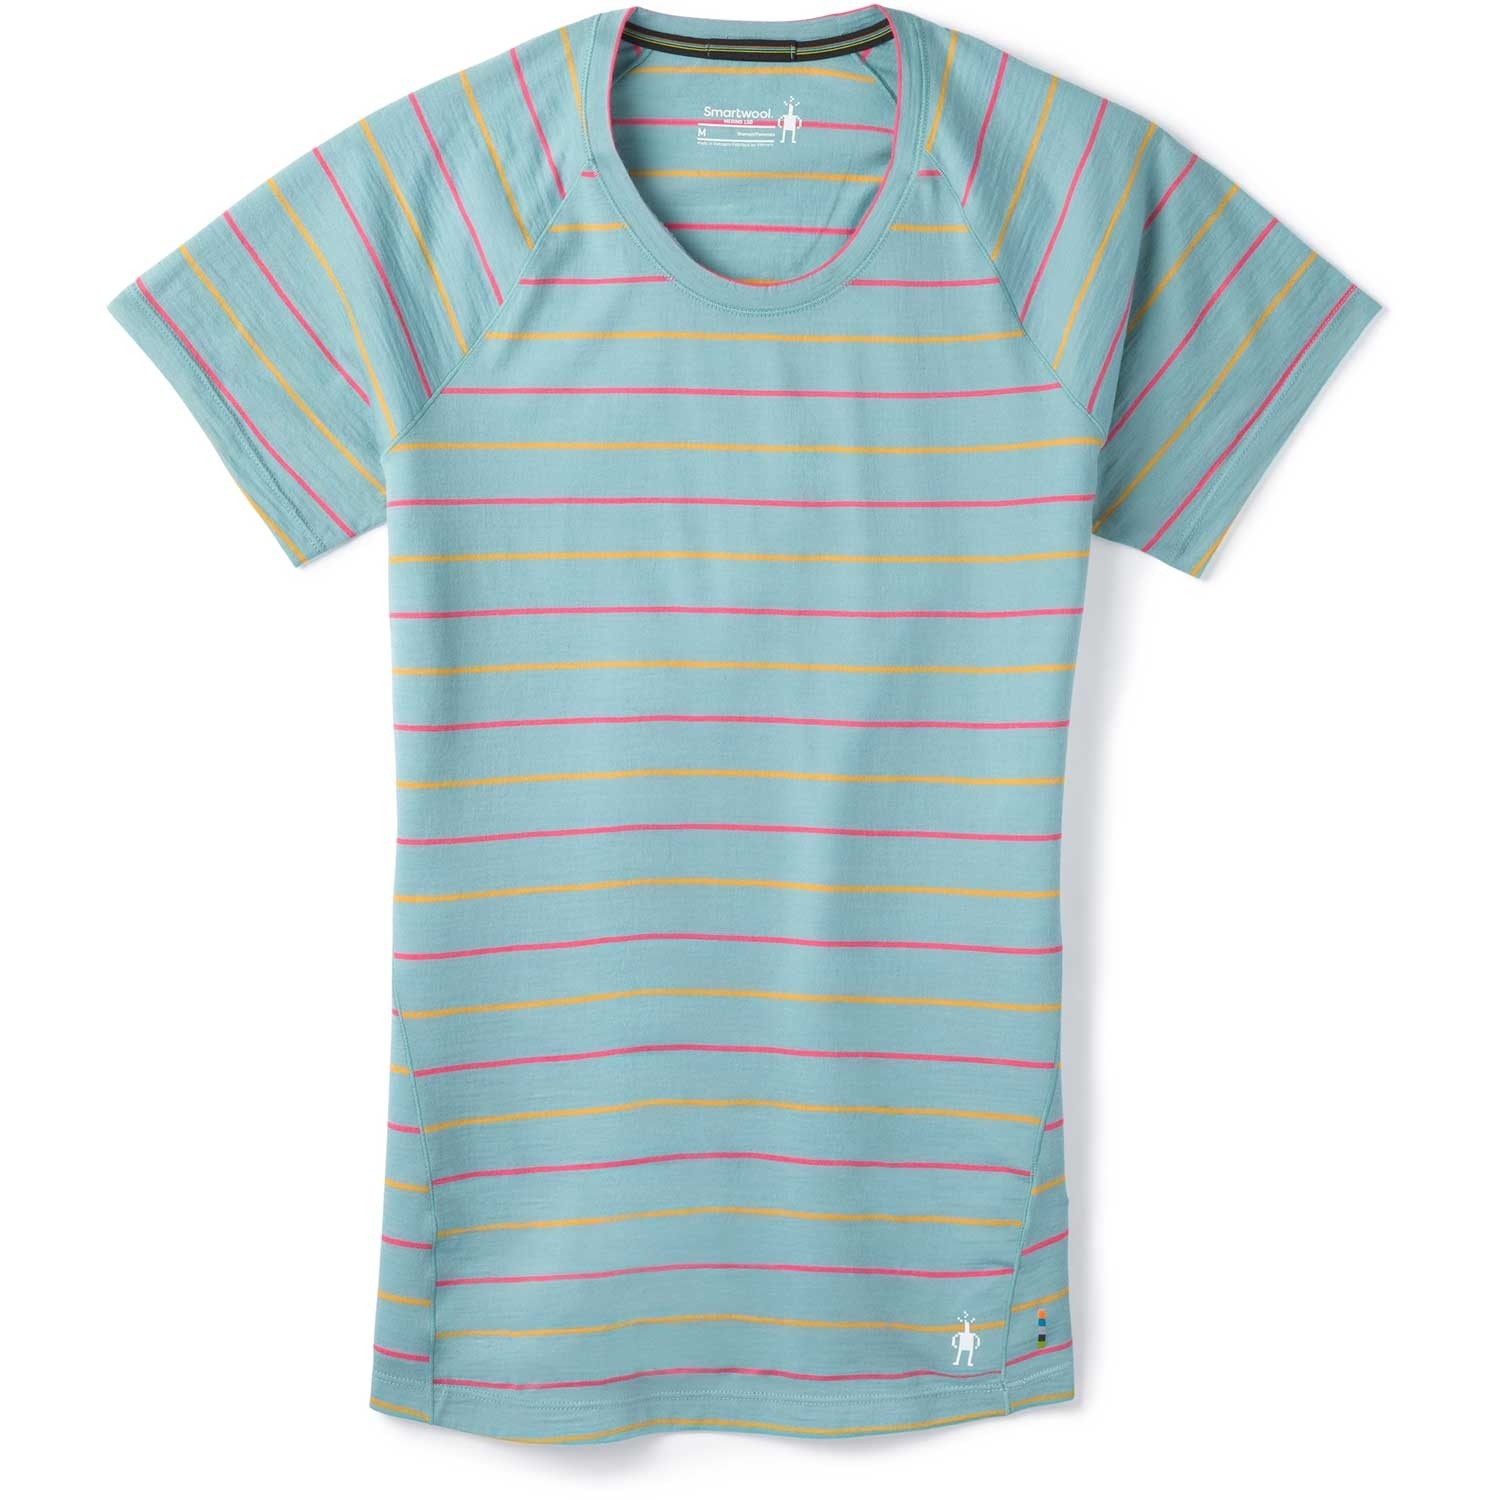 Smartwool Merino 150 Baselayer Short Sleeve - Womens - Wave Blue Stripe